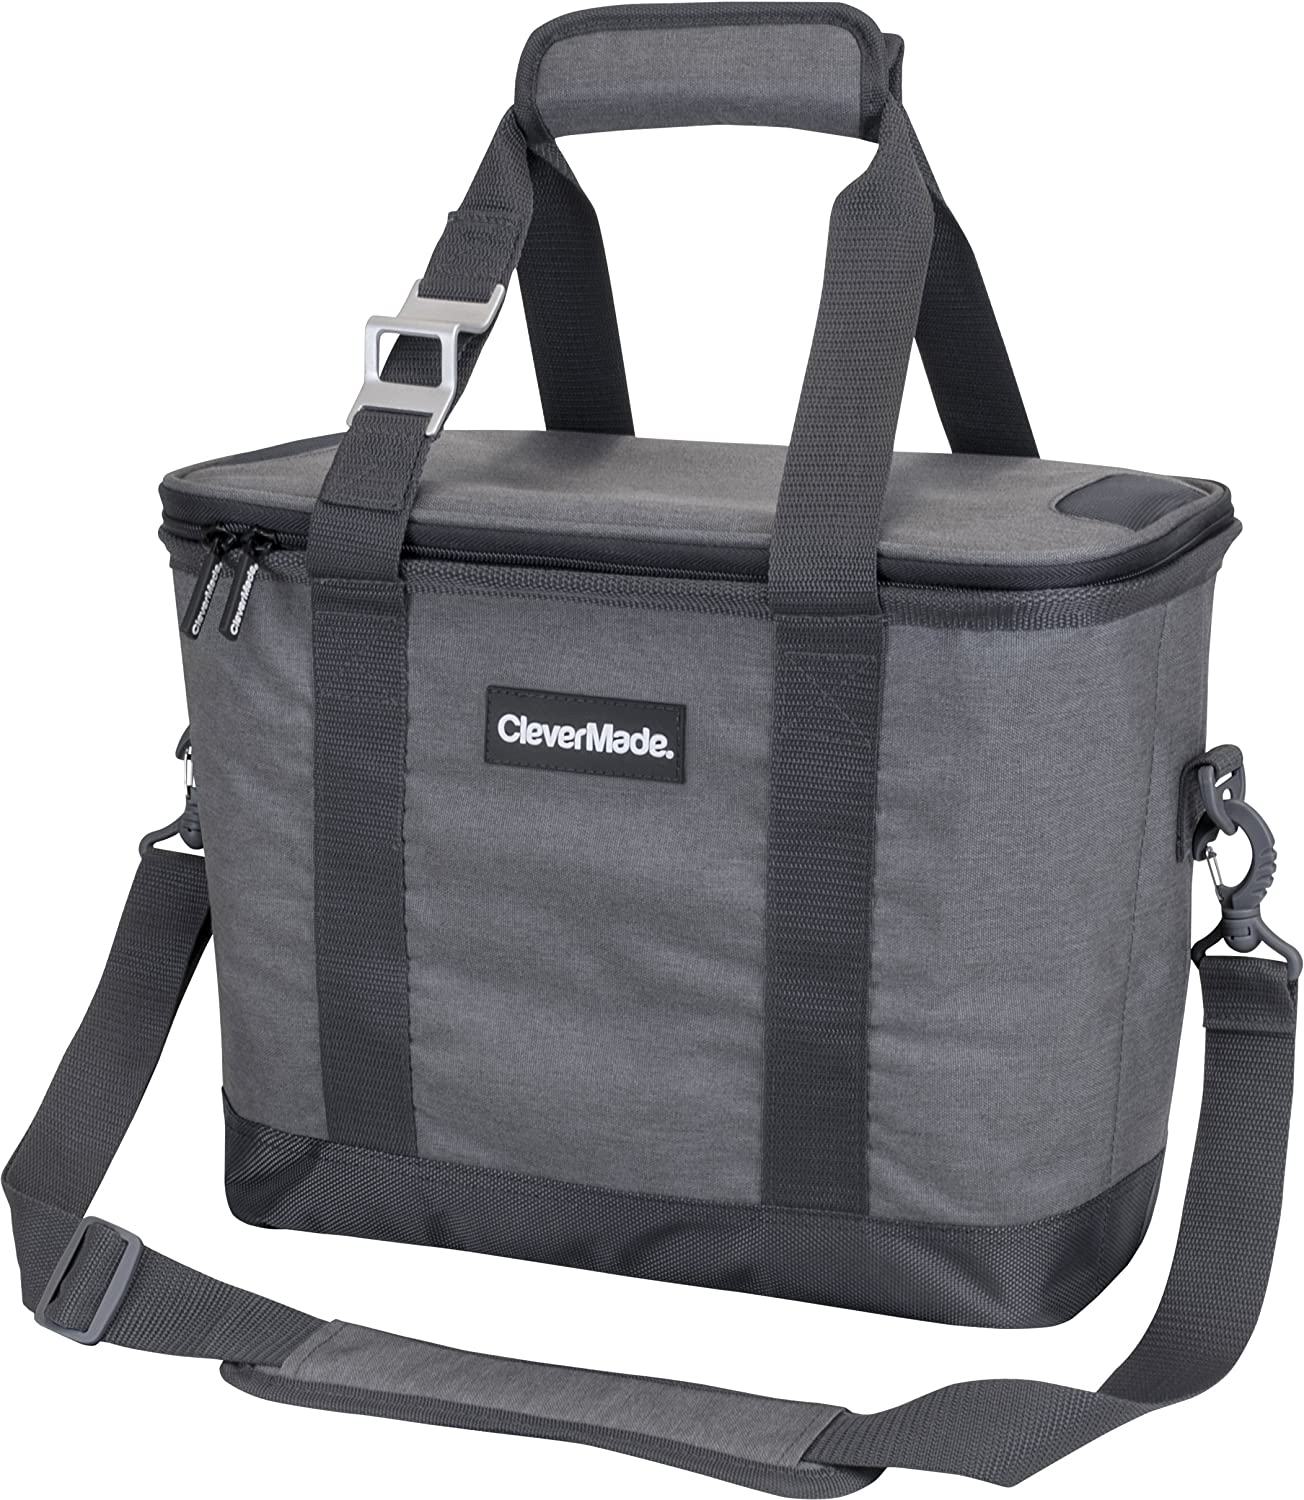 CleverMade Collapsible Cooler Bag with Shoulder Strap Insulated Leakproof 30 Can Portable Soft Beverage Tote with Bottle Opener for Camping, Lunch, Beach, Picnic Grey Charcoal